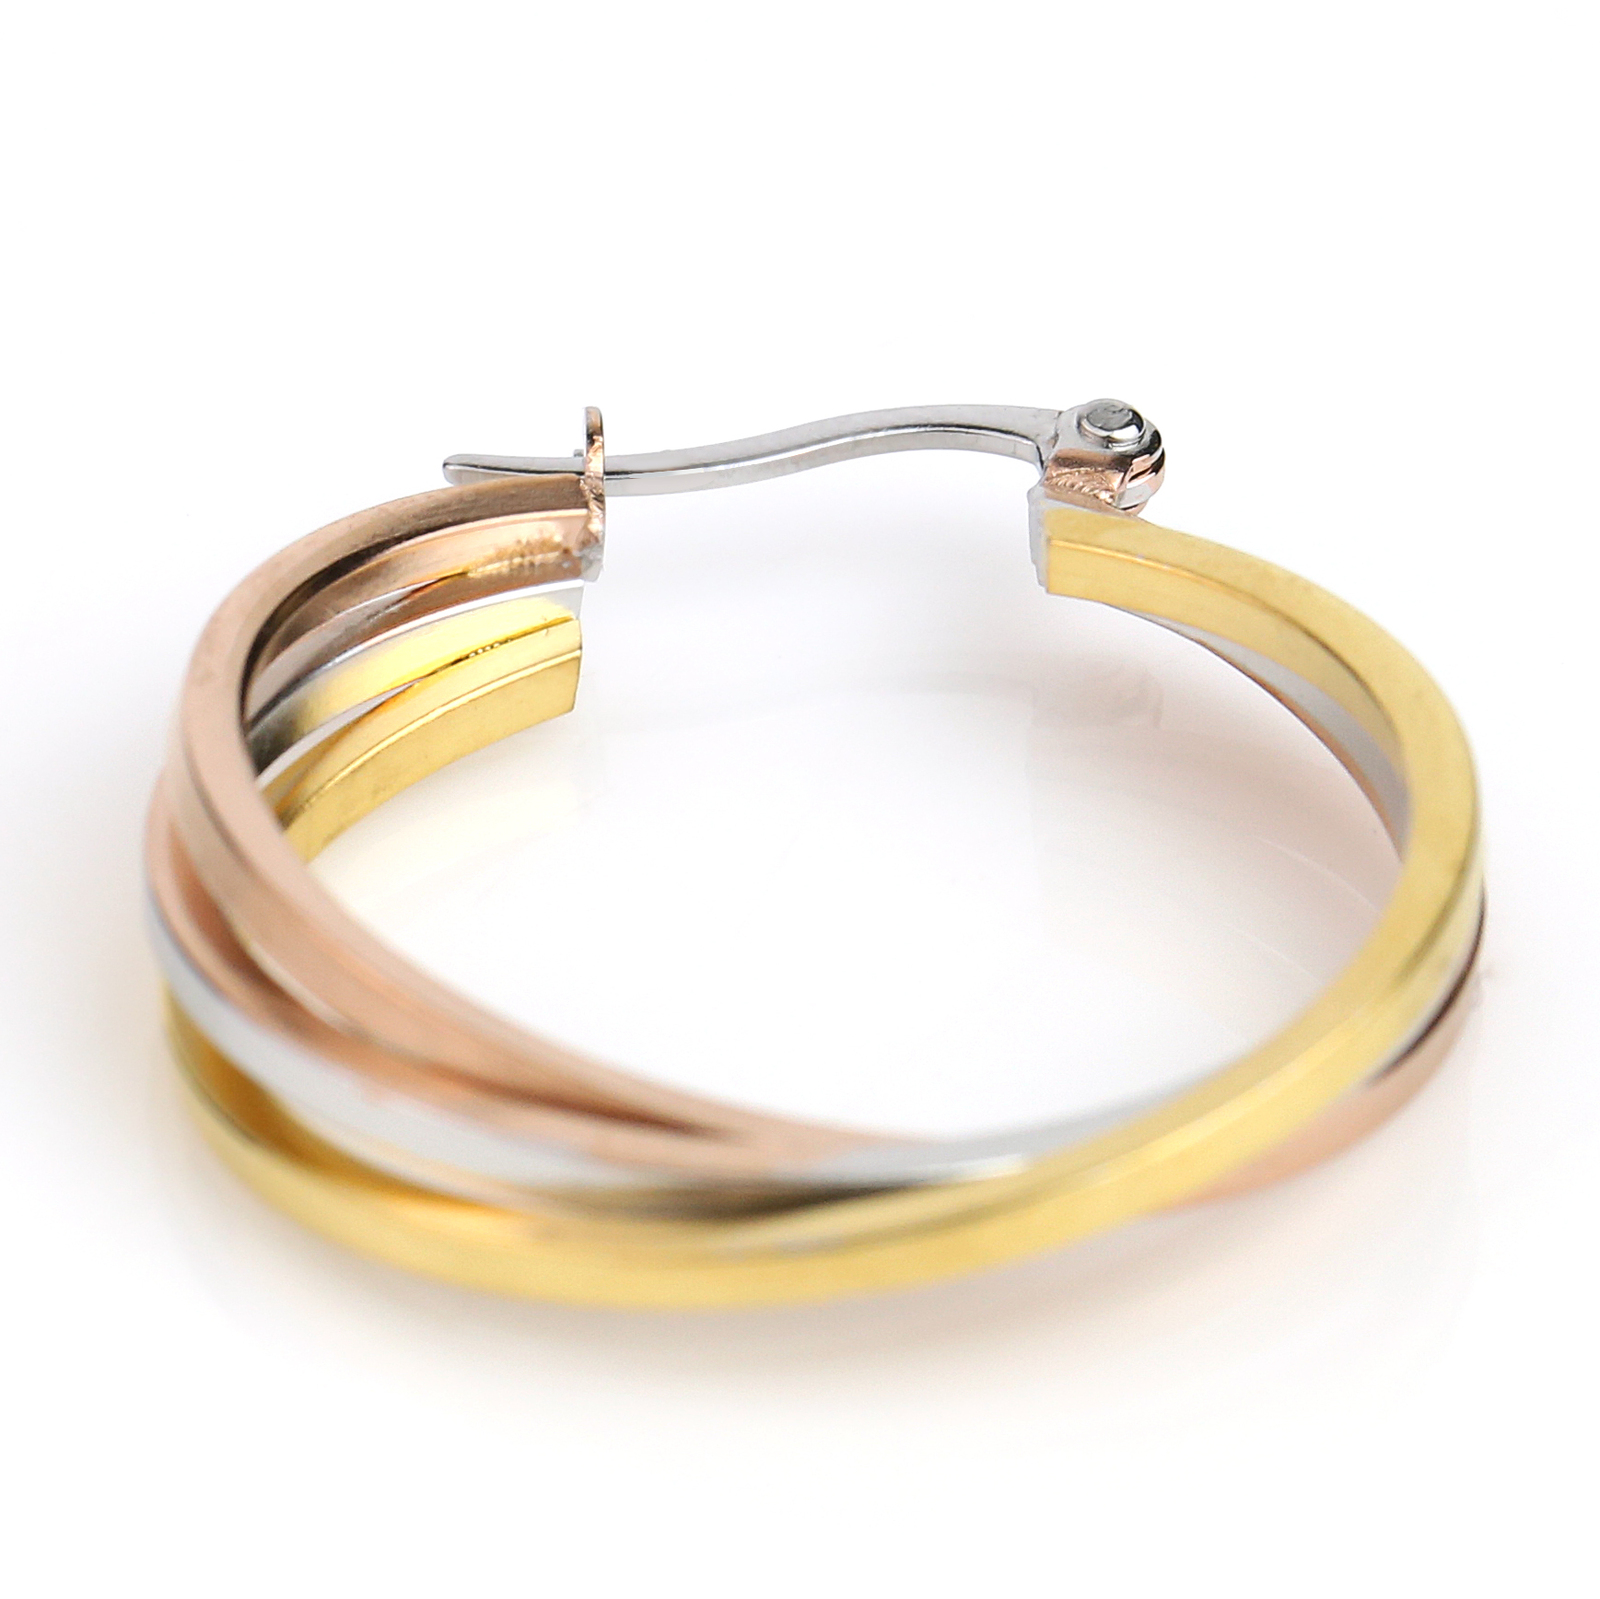 Trendy Twisted Tri-Color Silver, Gold & Rose Tone Hoop Earrings- United Elegance